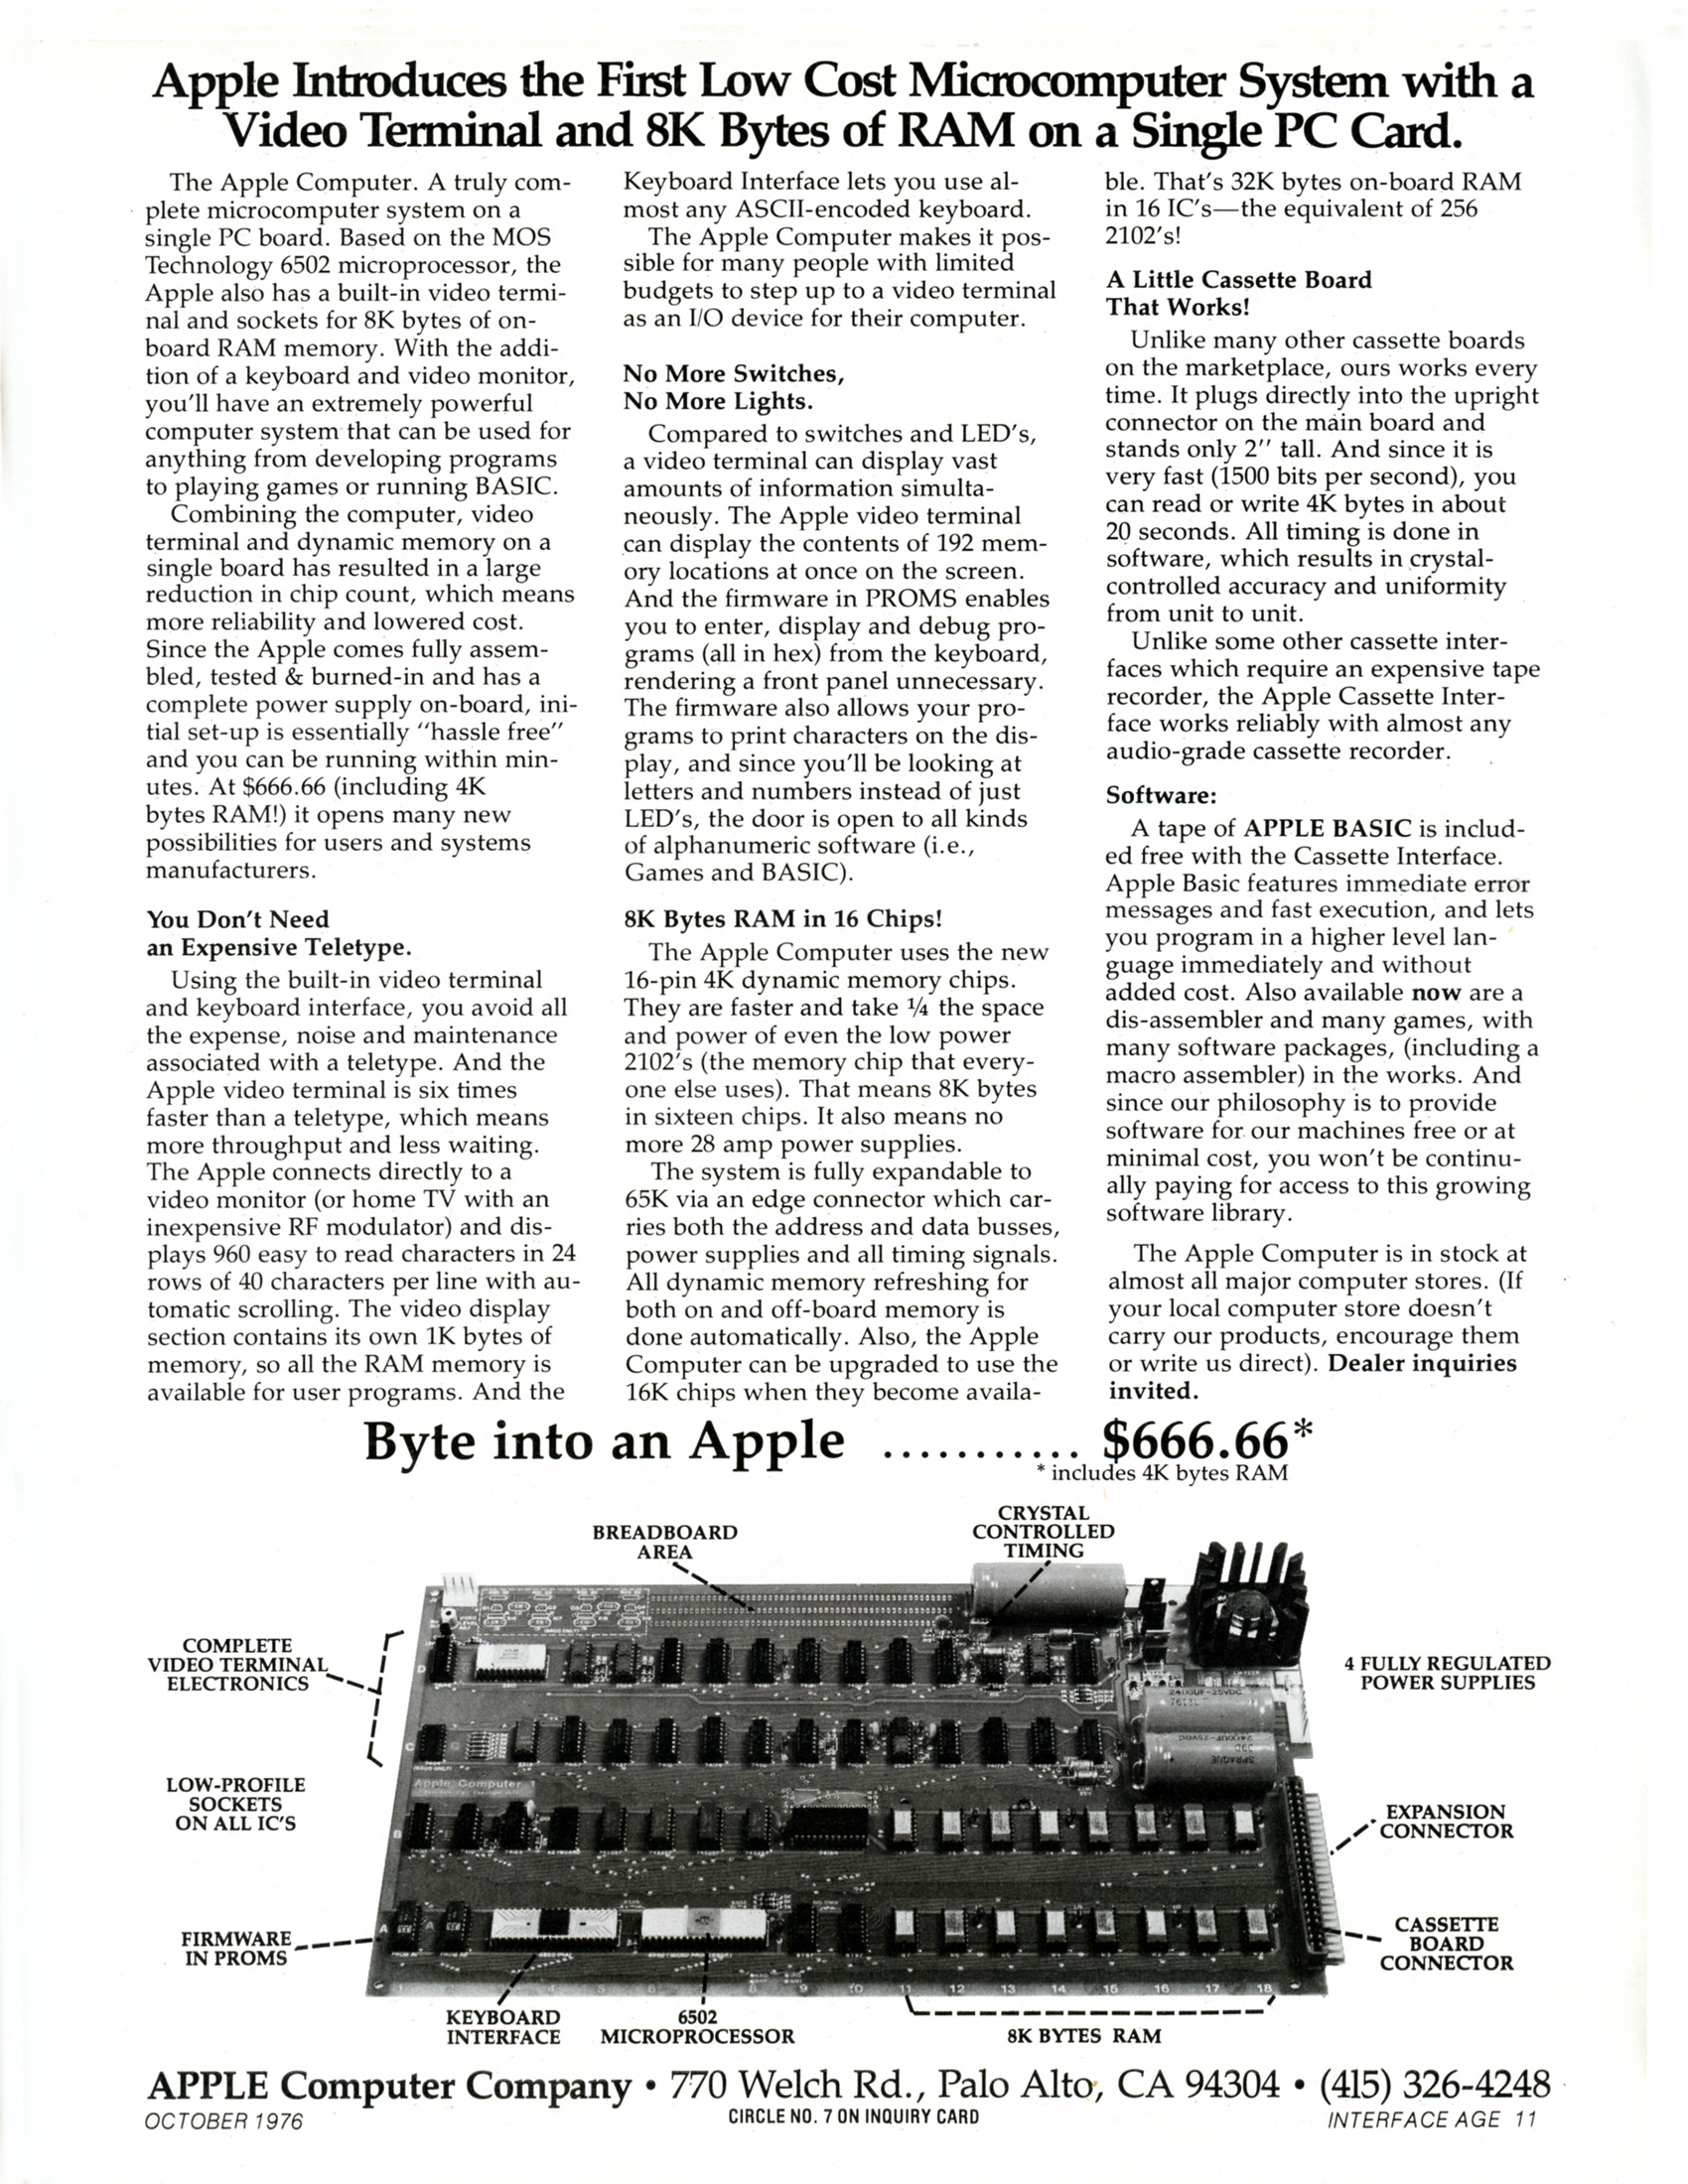 Original Apple I computer advertisement